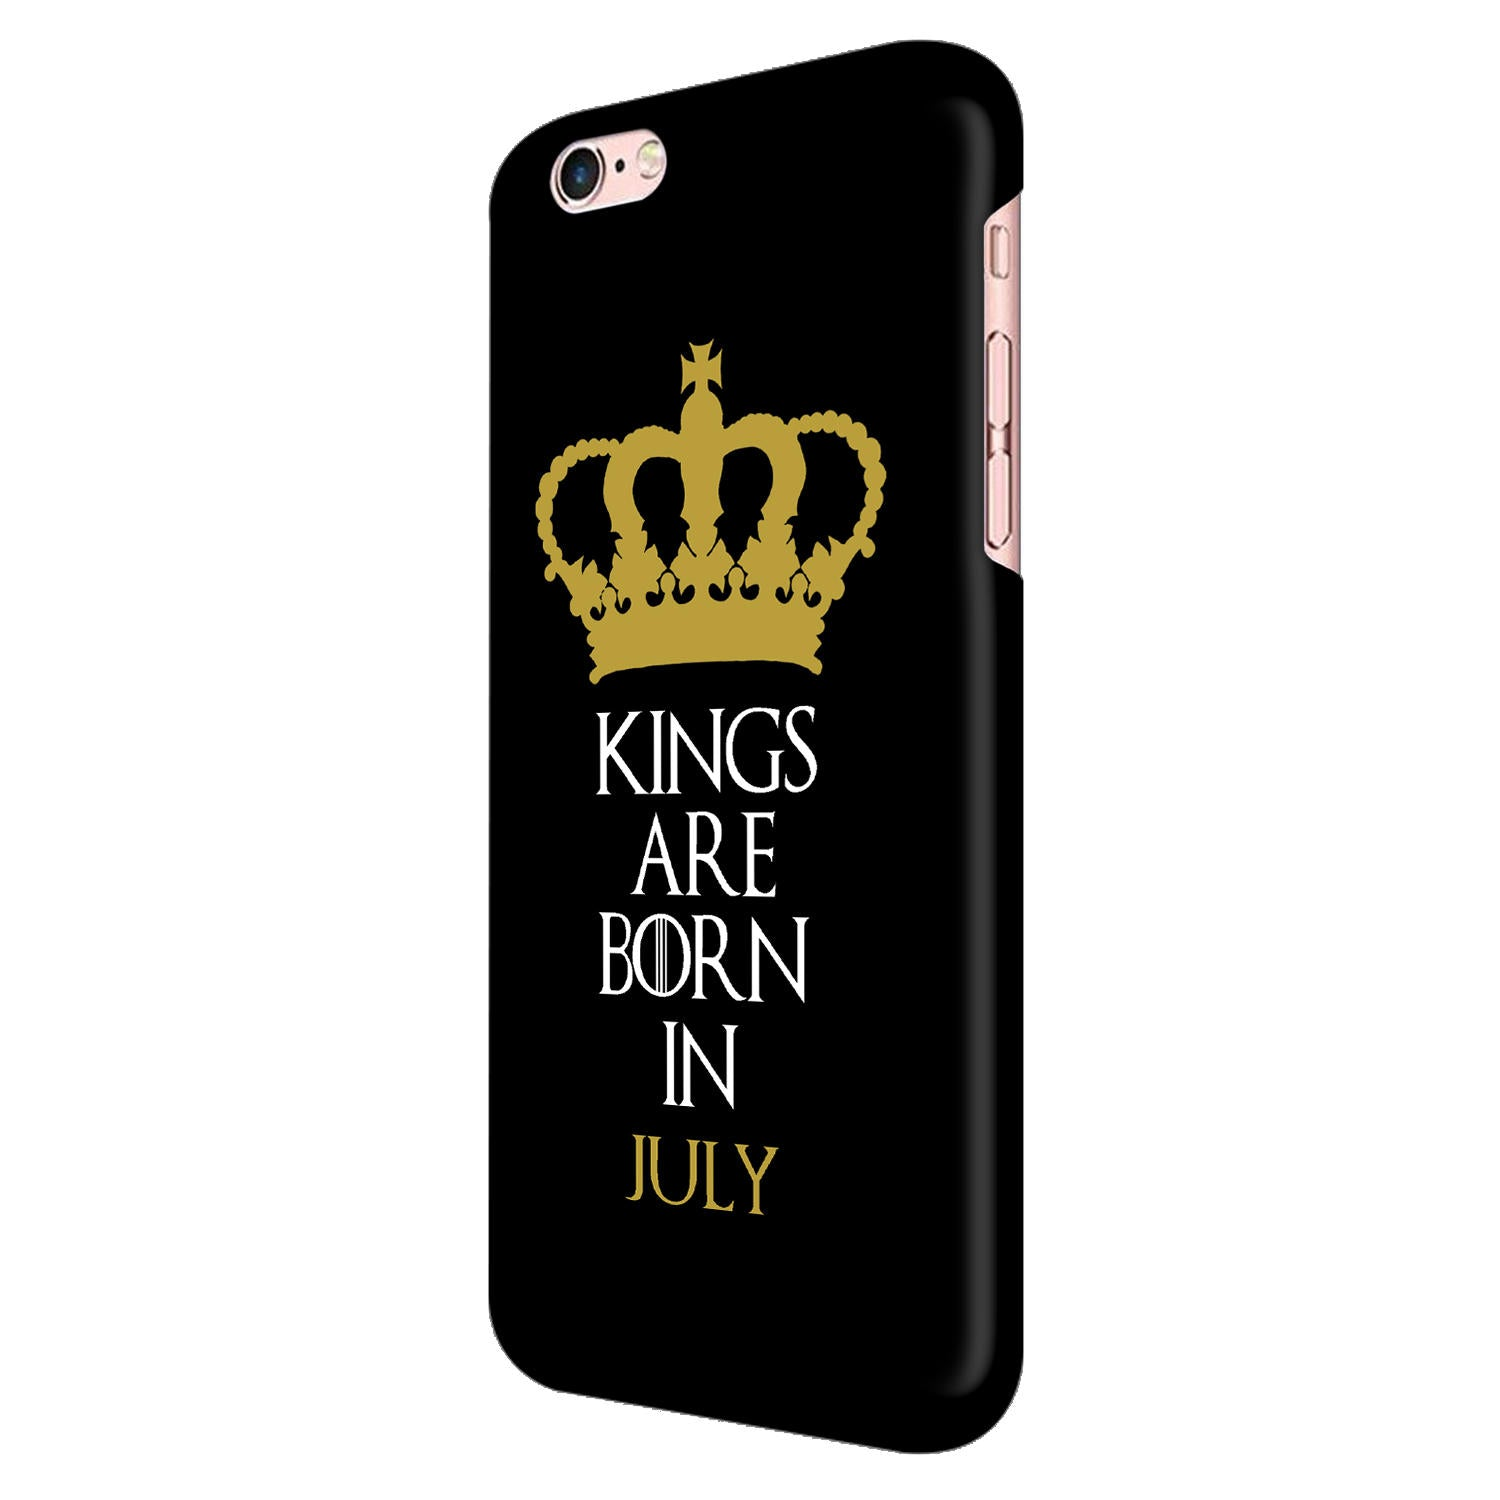 Kings July iPhone 6 Mobile Cover Case - MADANYU